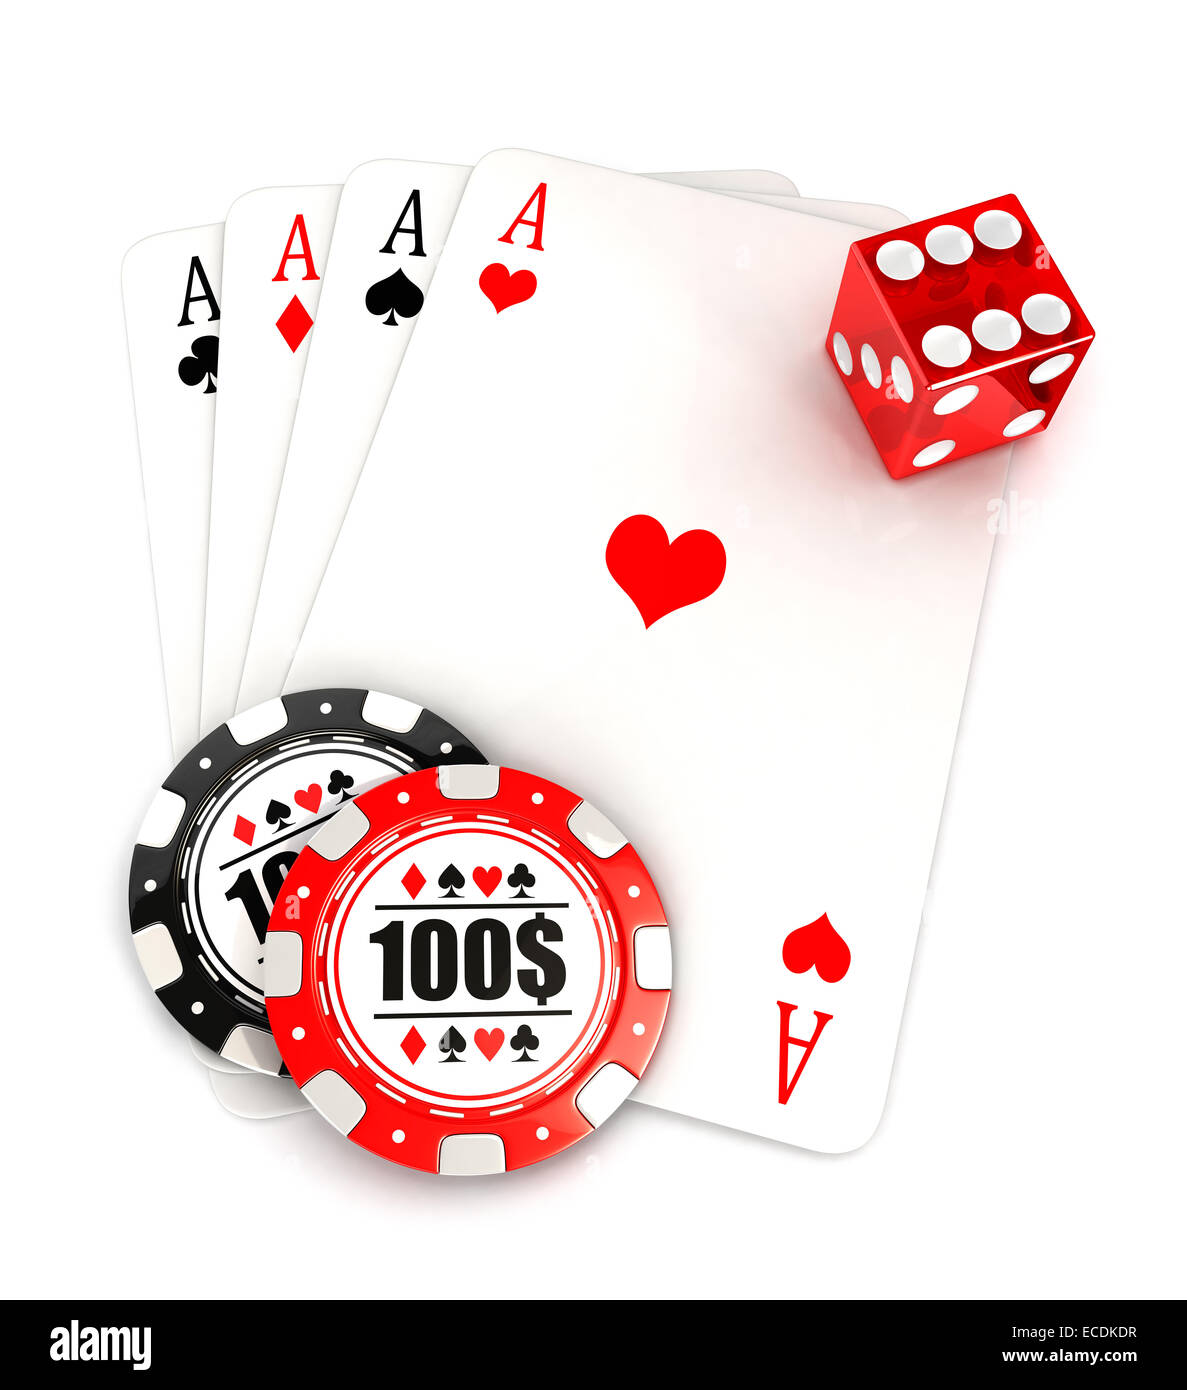 3d casino accessories, dice, cards and chips, isolated white background, 3d image Stock Photo